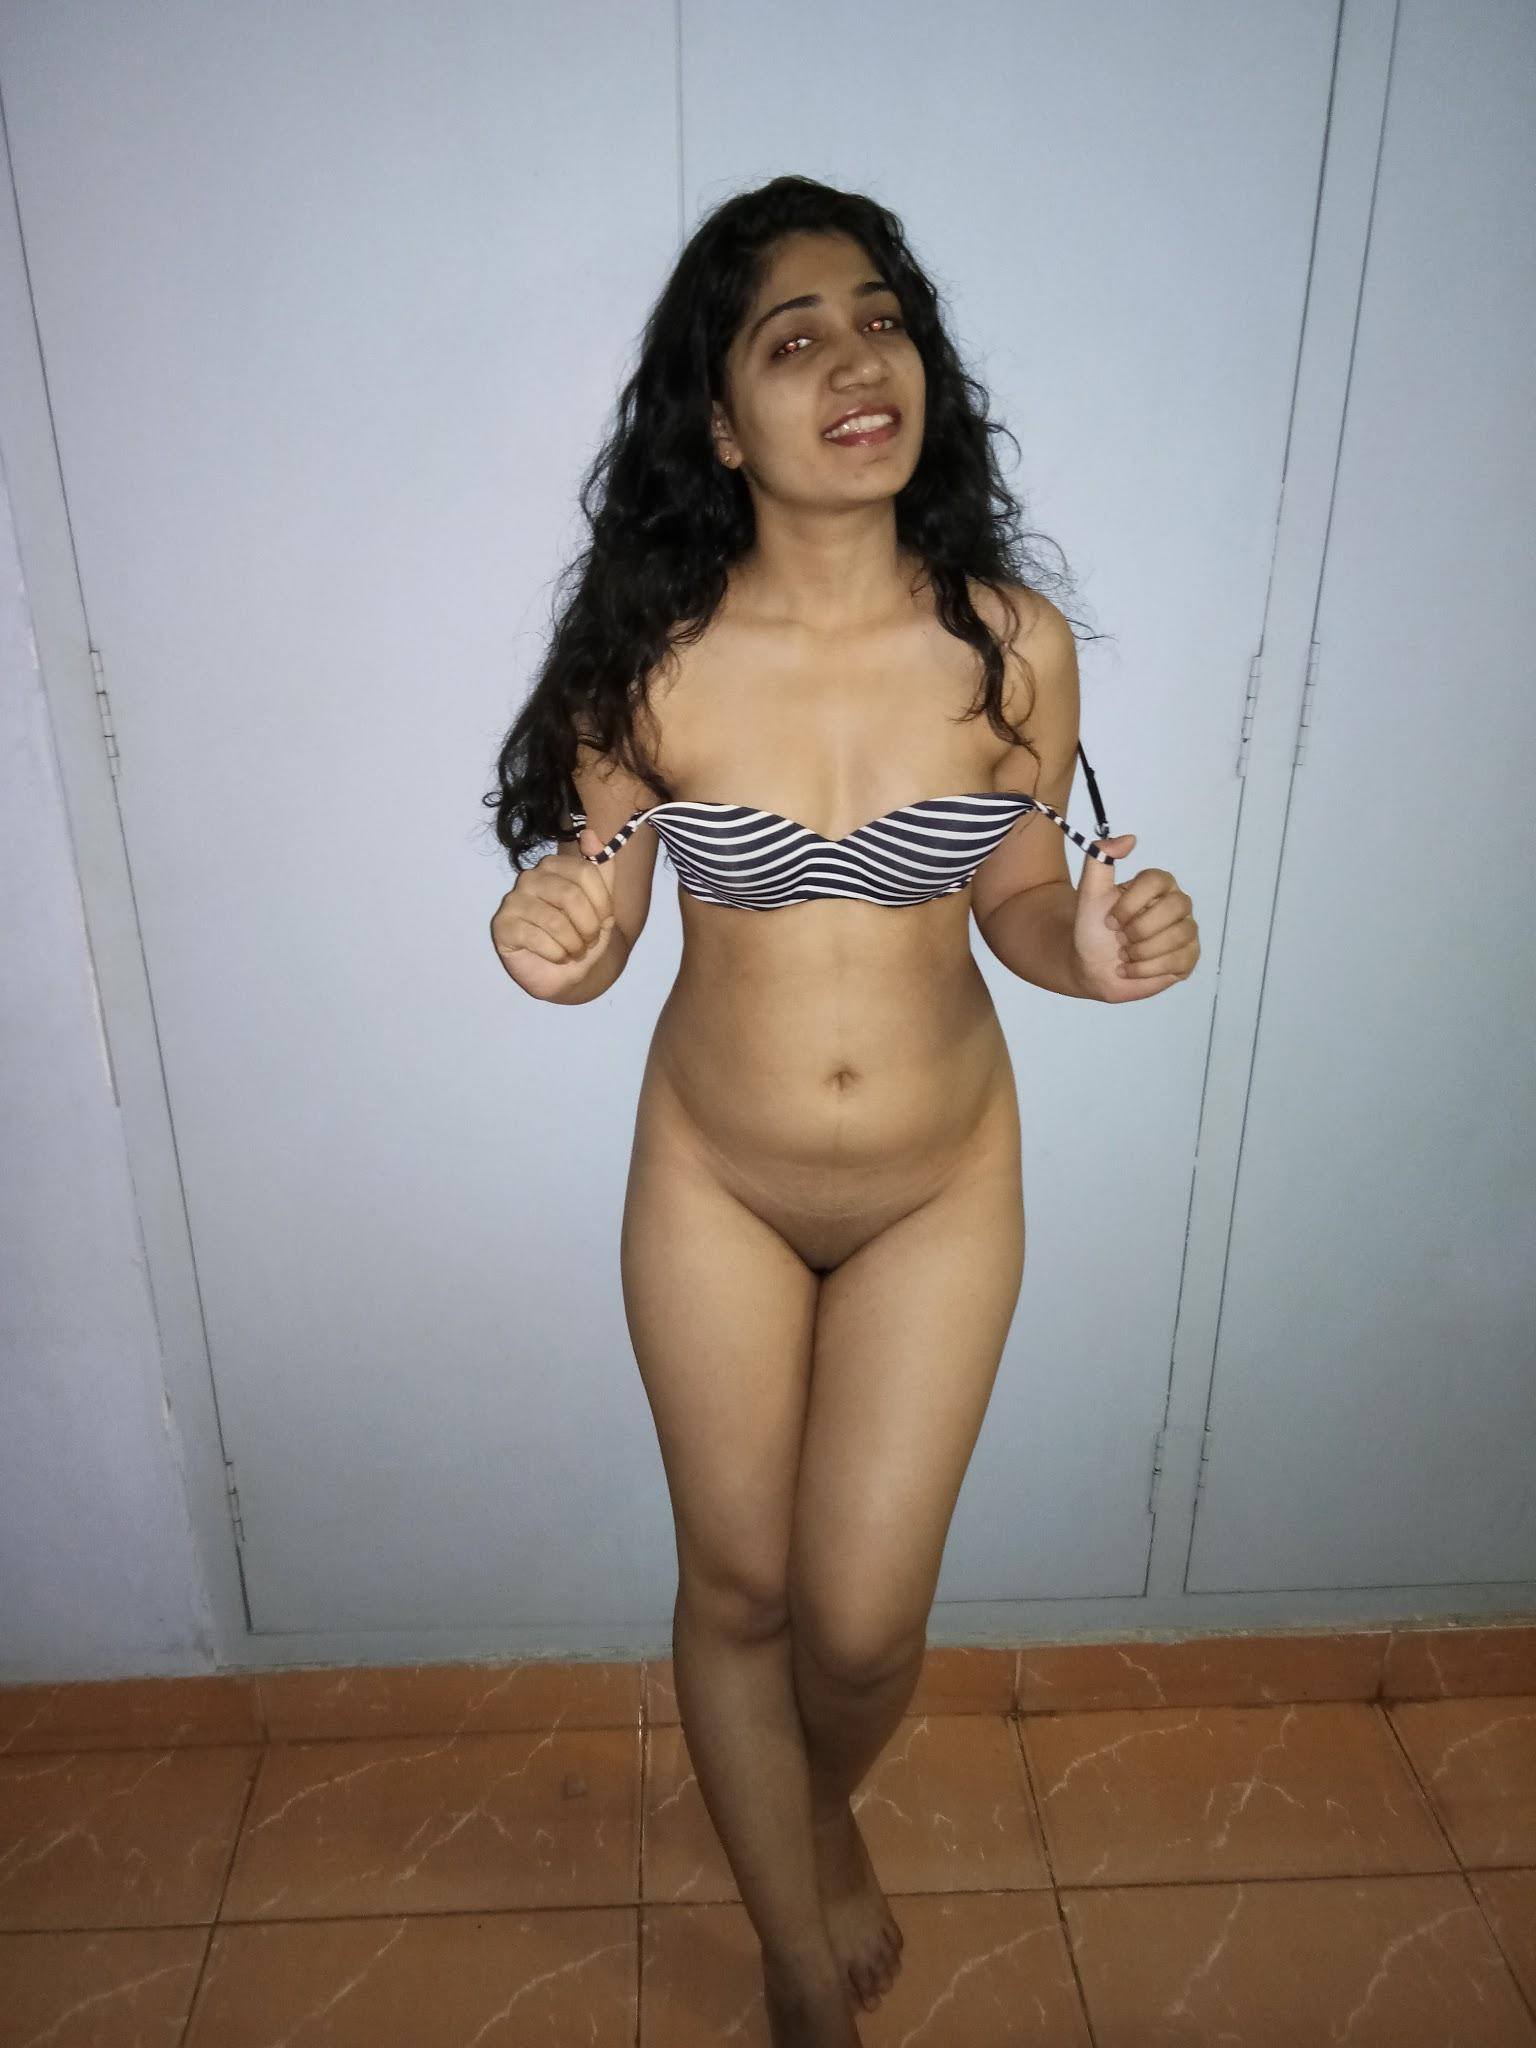 surat college girls nude 4 - Young Gujarati Desi Item Girl Nude XXX Photos